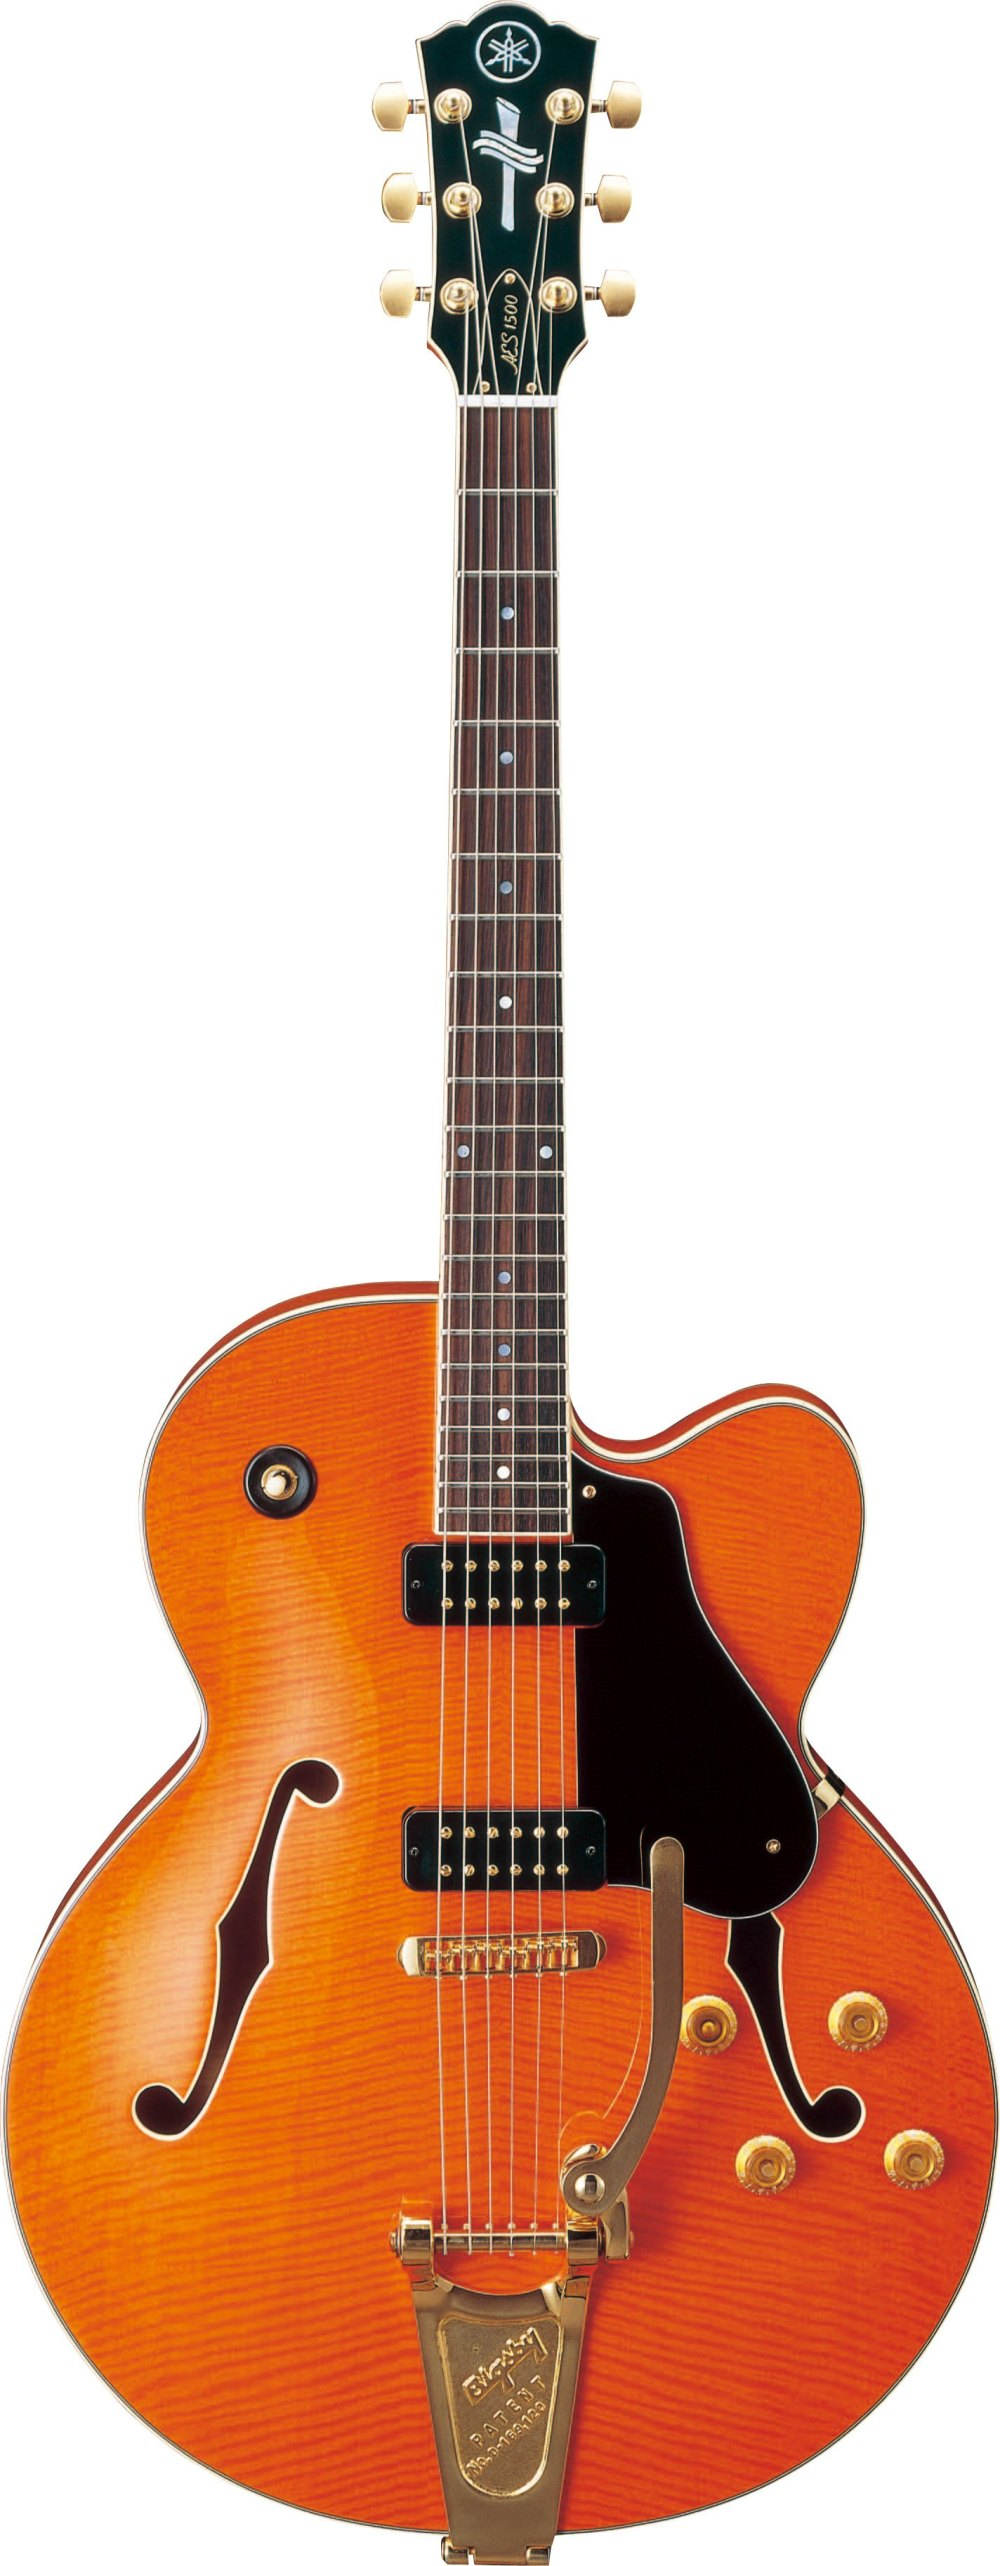 medium resolution of aes1500b aes semi hollow series archtop electric guitar with bigsby tremolo